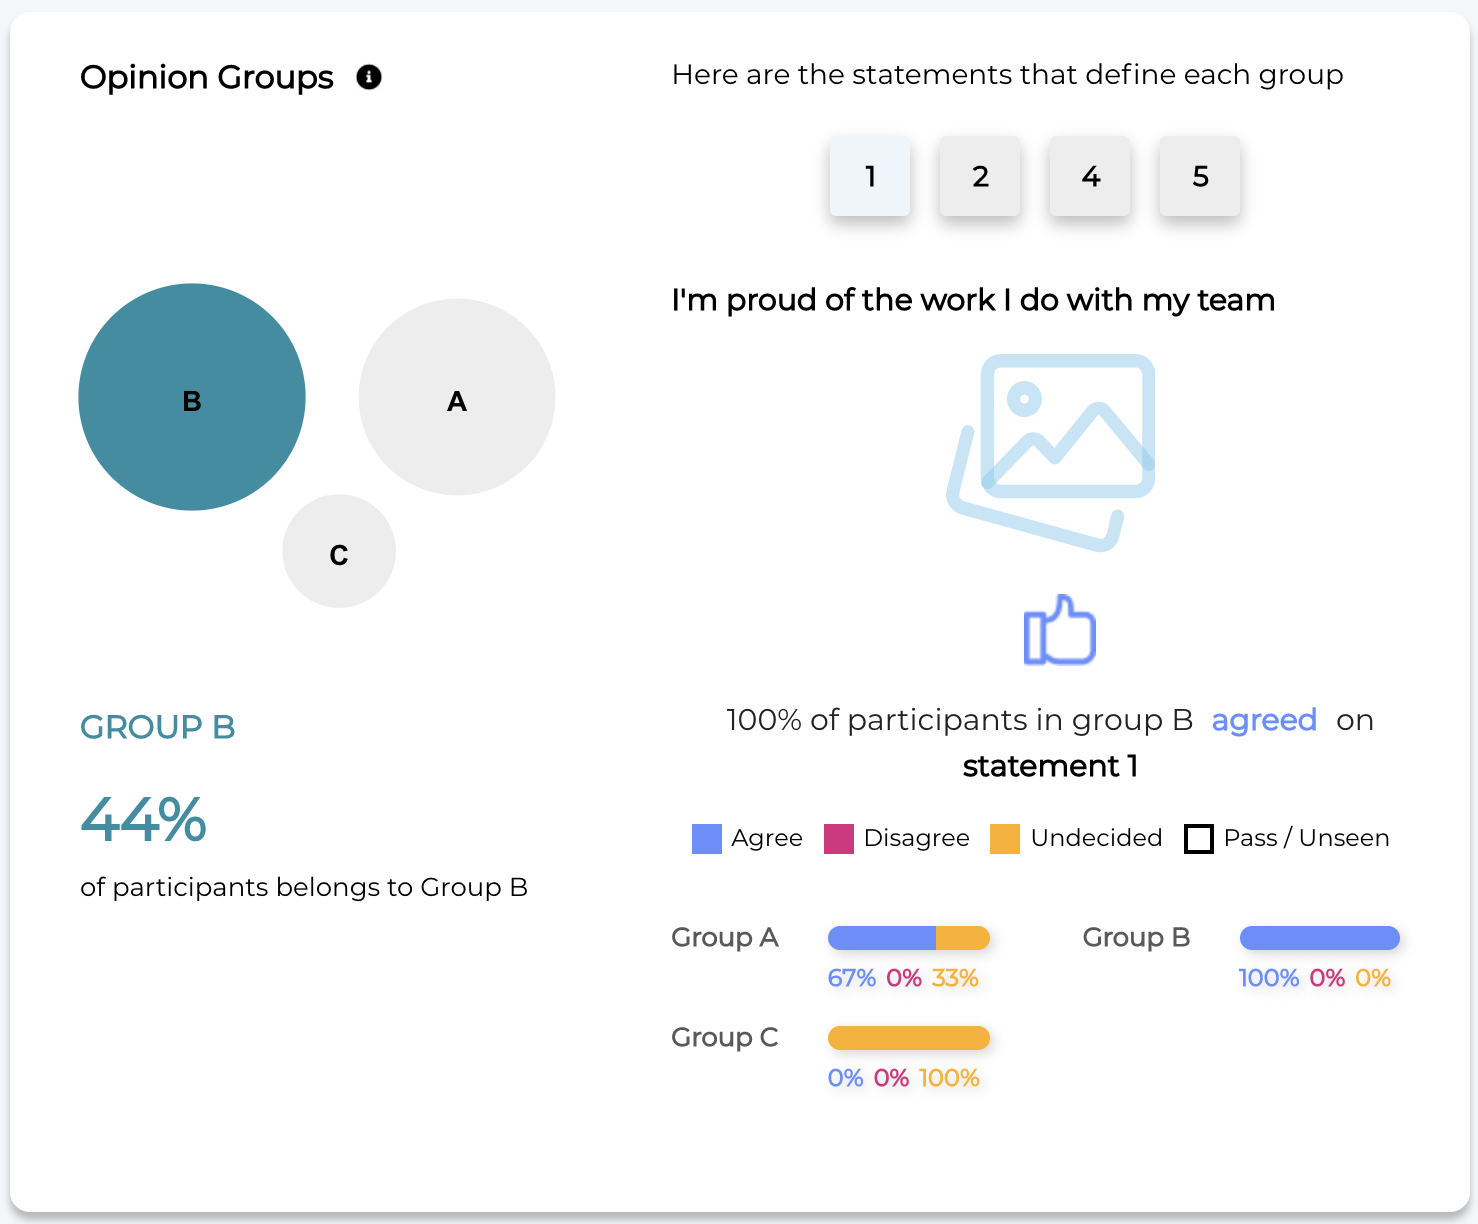 A screenshot of the OPPi analytics dashboard showing three distinct opinion groups and the proportion of participants in each one. There is also a list of statements that define each group, as well as quick insights on how participants from each group voted on said statements.